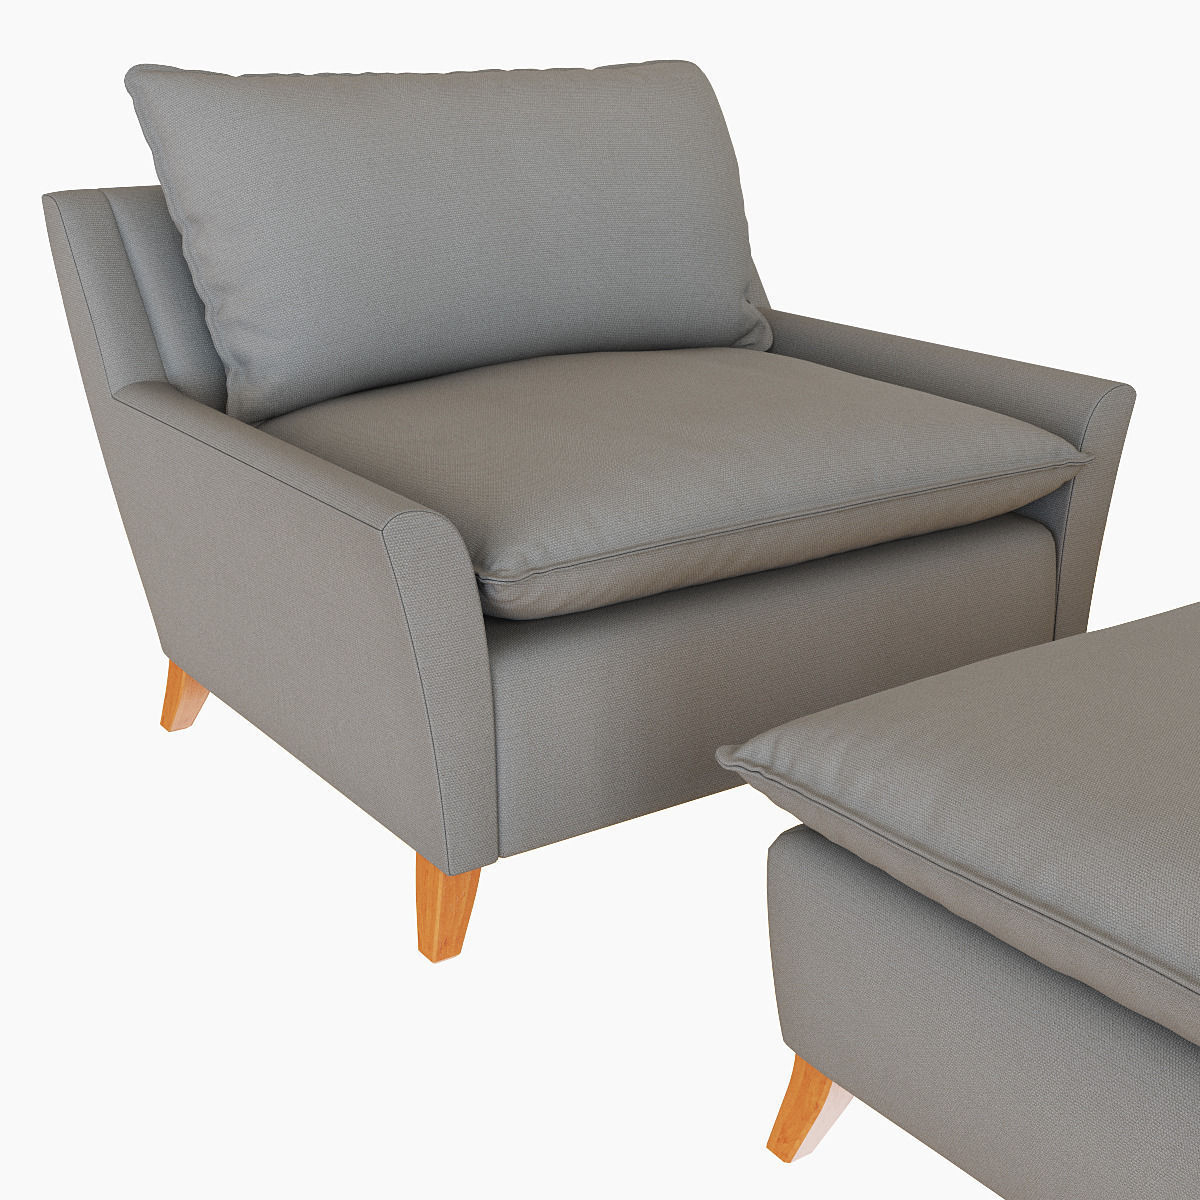 West Elm Bliss Down Filled Chair And A Half 3D Model Max Obj Mtl Fbx For Elm Sofa Chairs (Image 25 of 25)